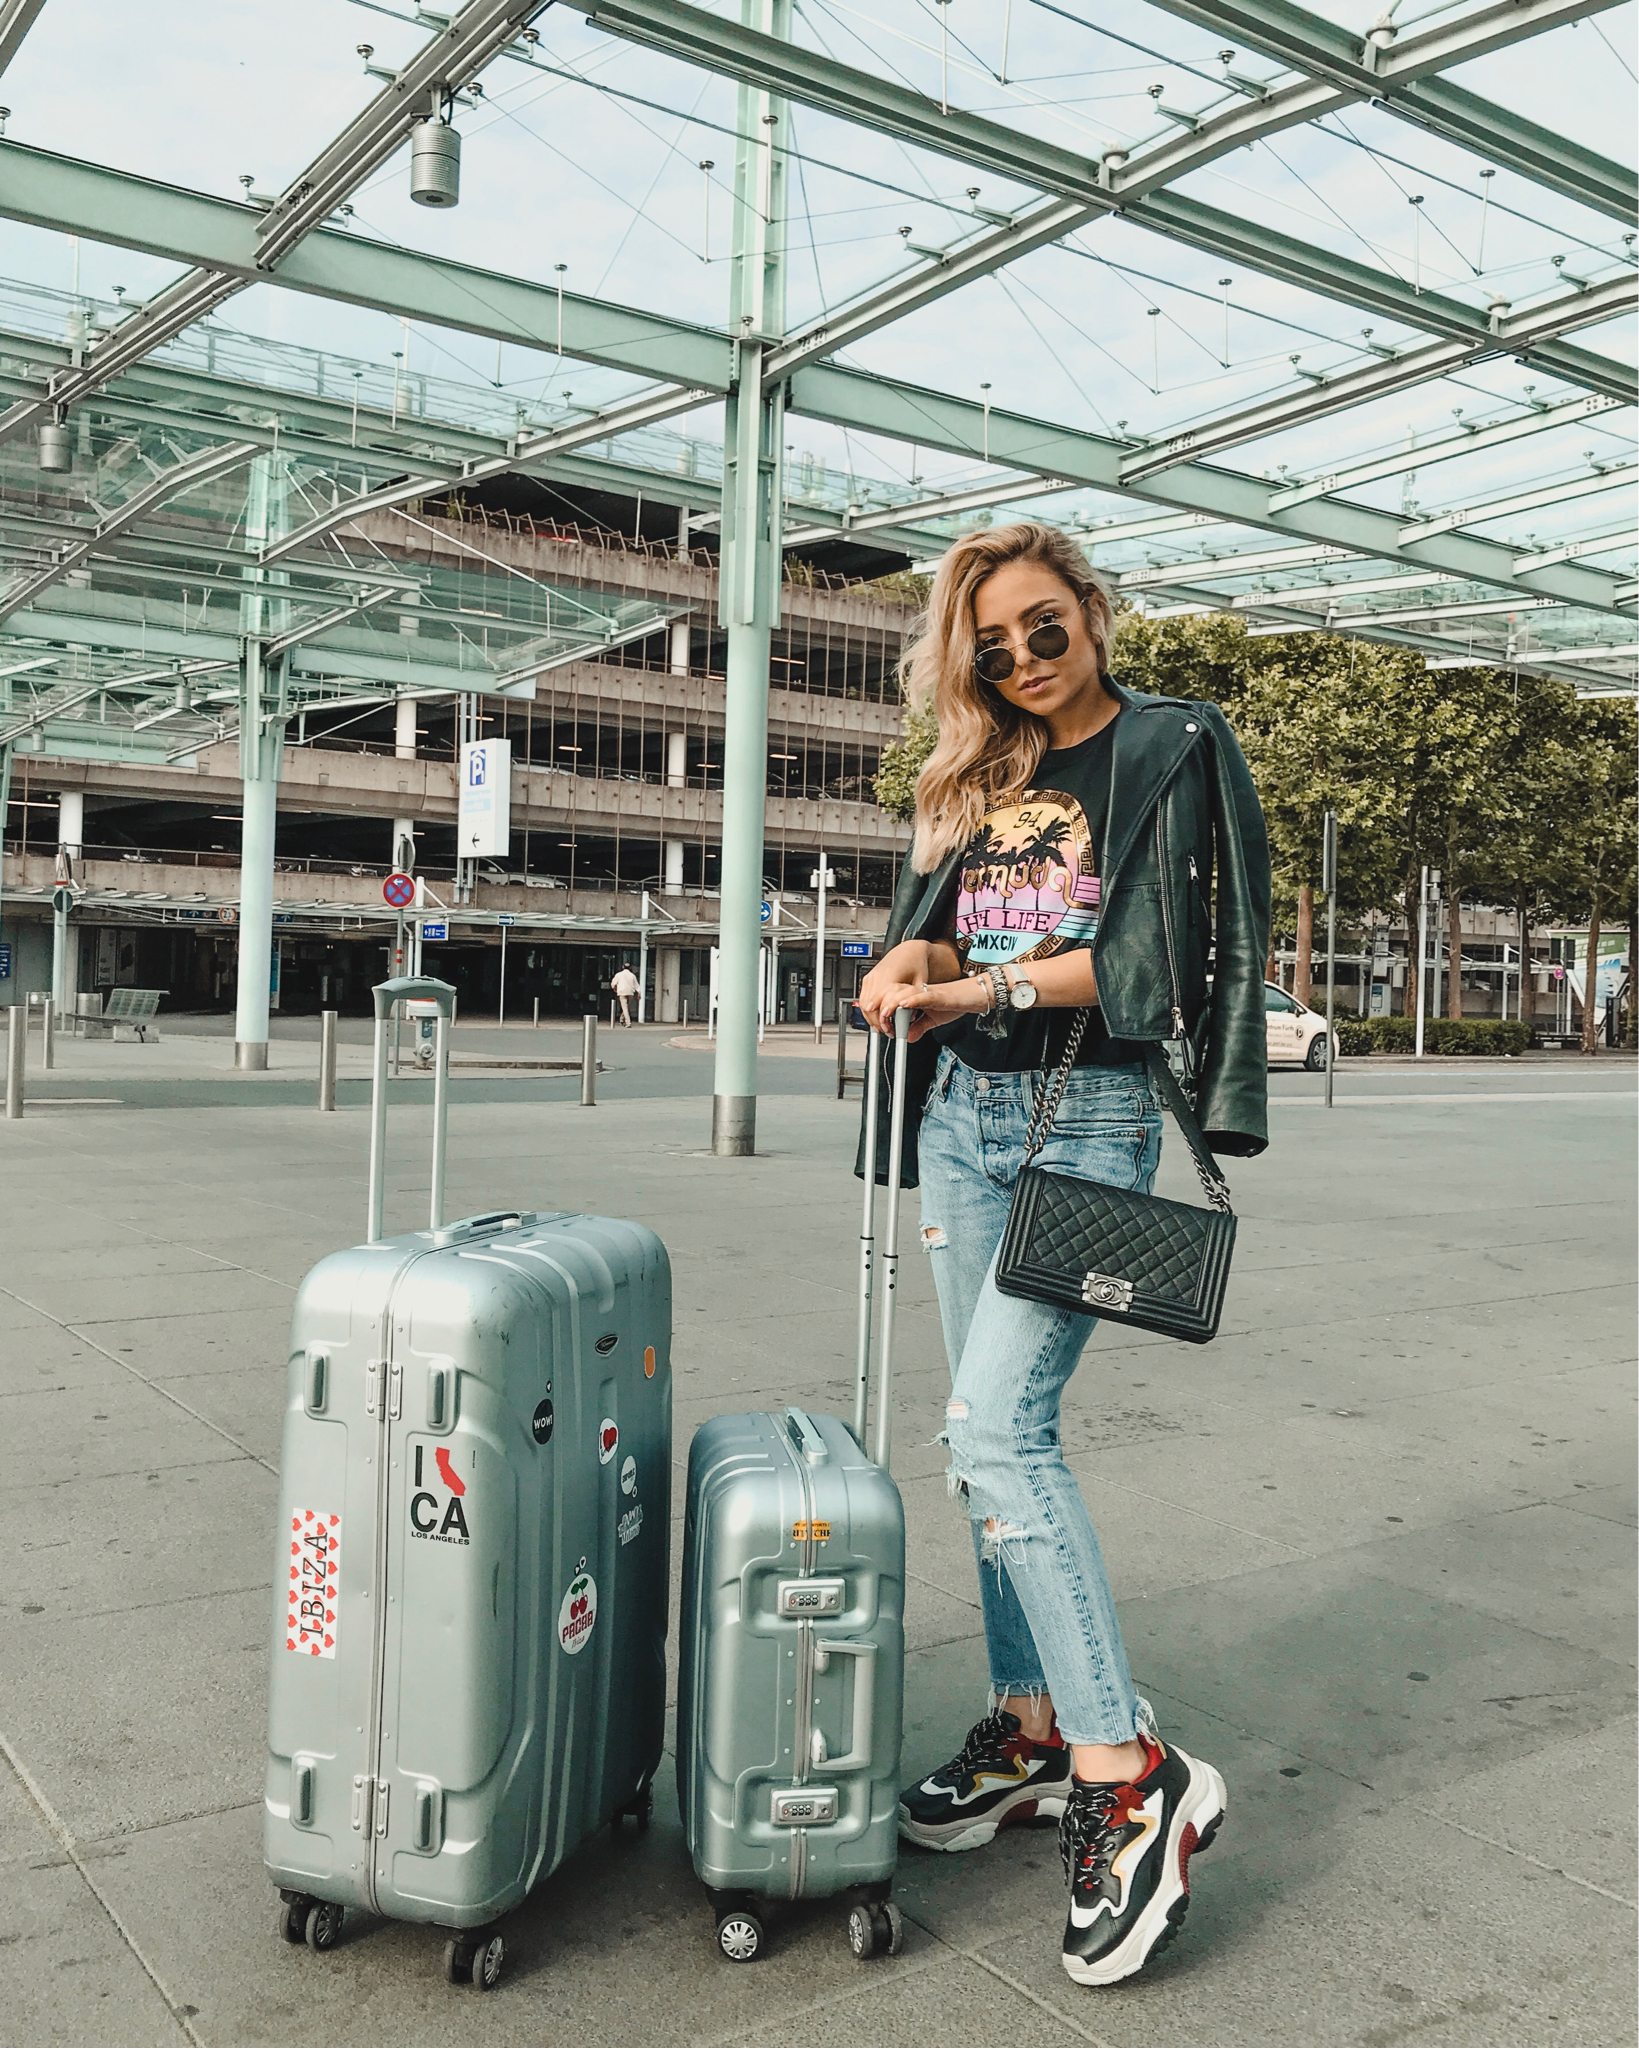 8dc9041a36ea 5 Airport Outfit Looks You Can Shop - LikeToKnowIt